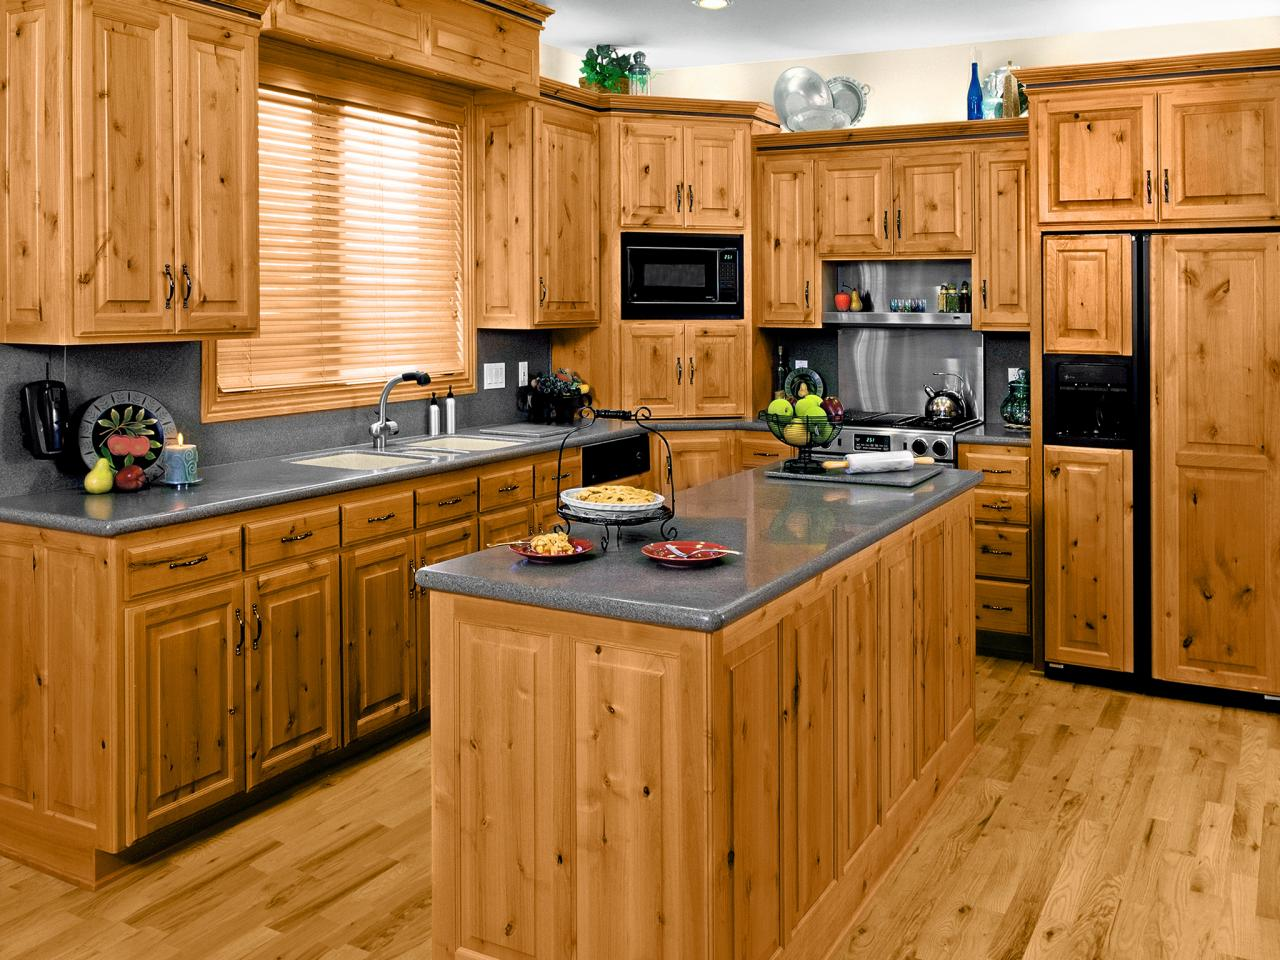 pine kitchen cabinets pictures options tips ideas hgtv. Black Bedroom Furniture Sets. Home Design Ideas